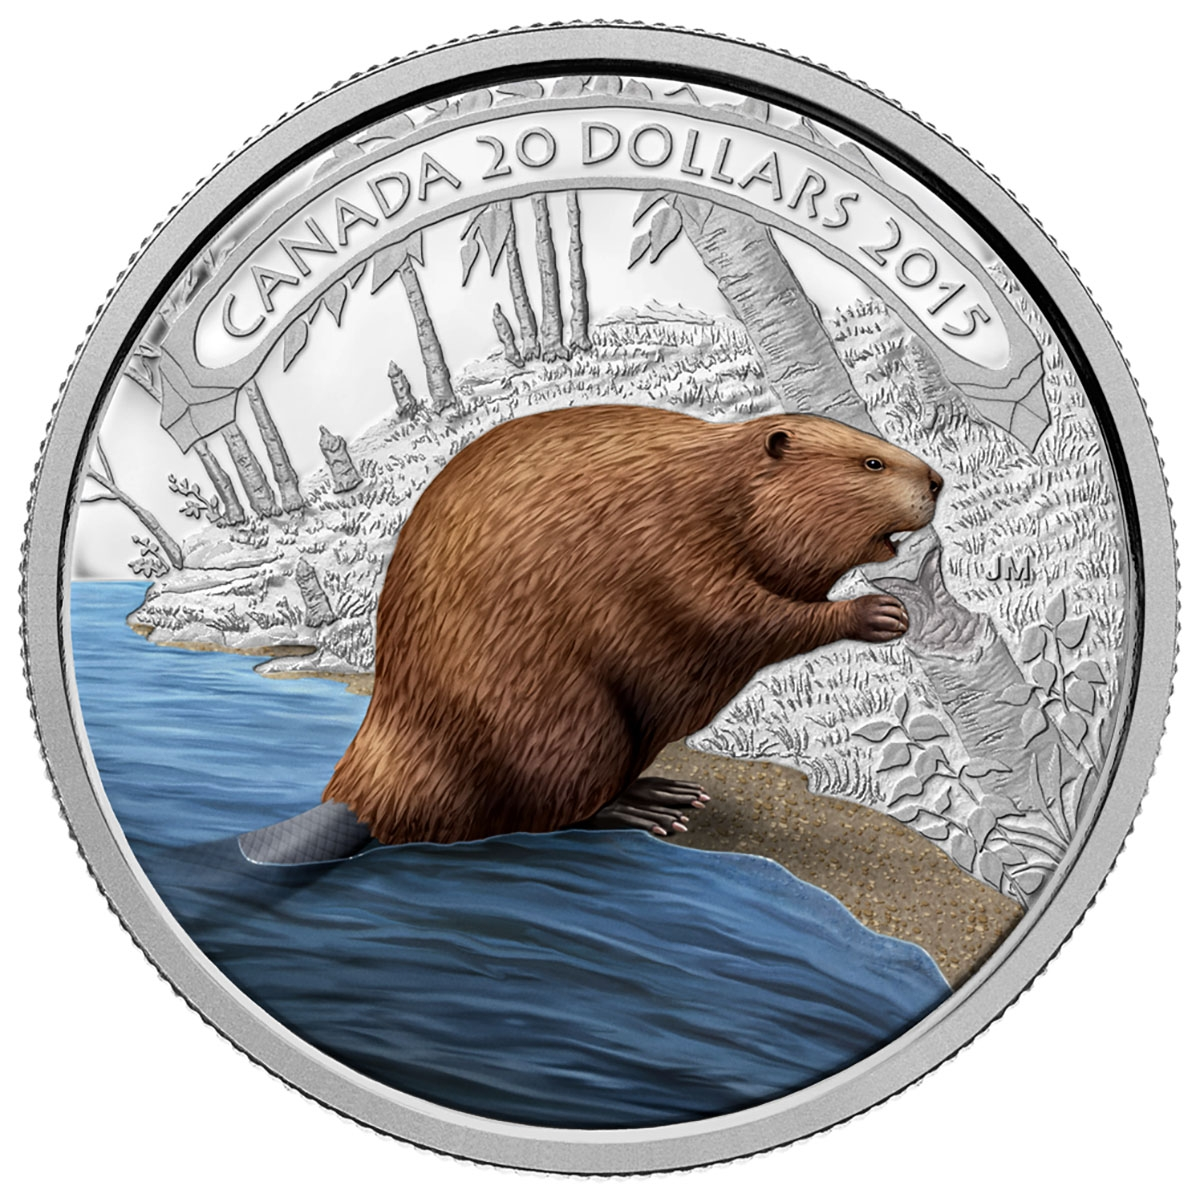 2015 20 Fine Silver Coin Beaver At Work Royal Canadian Mint Coins